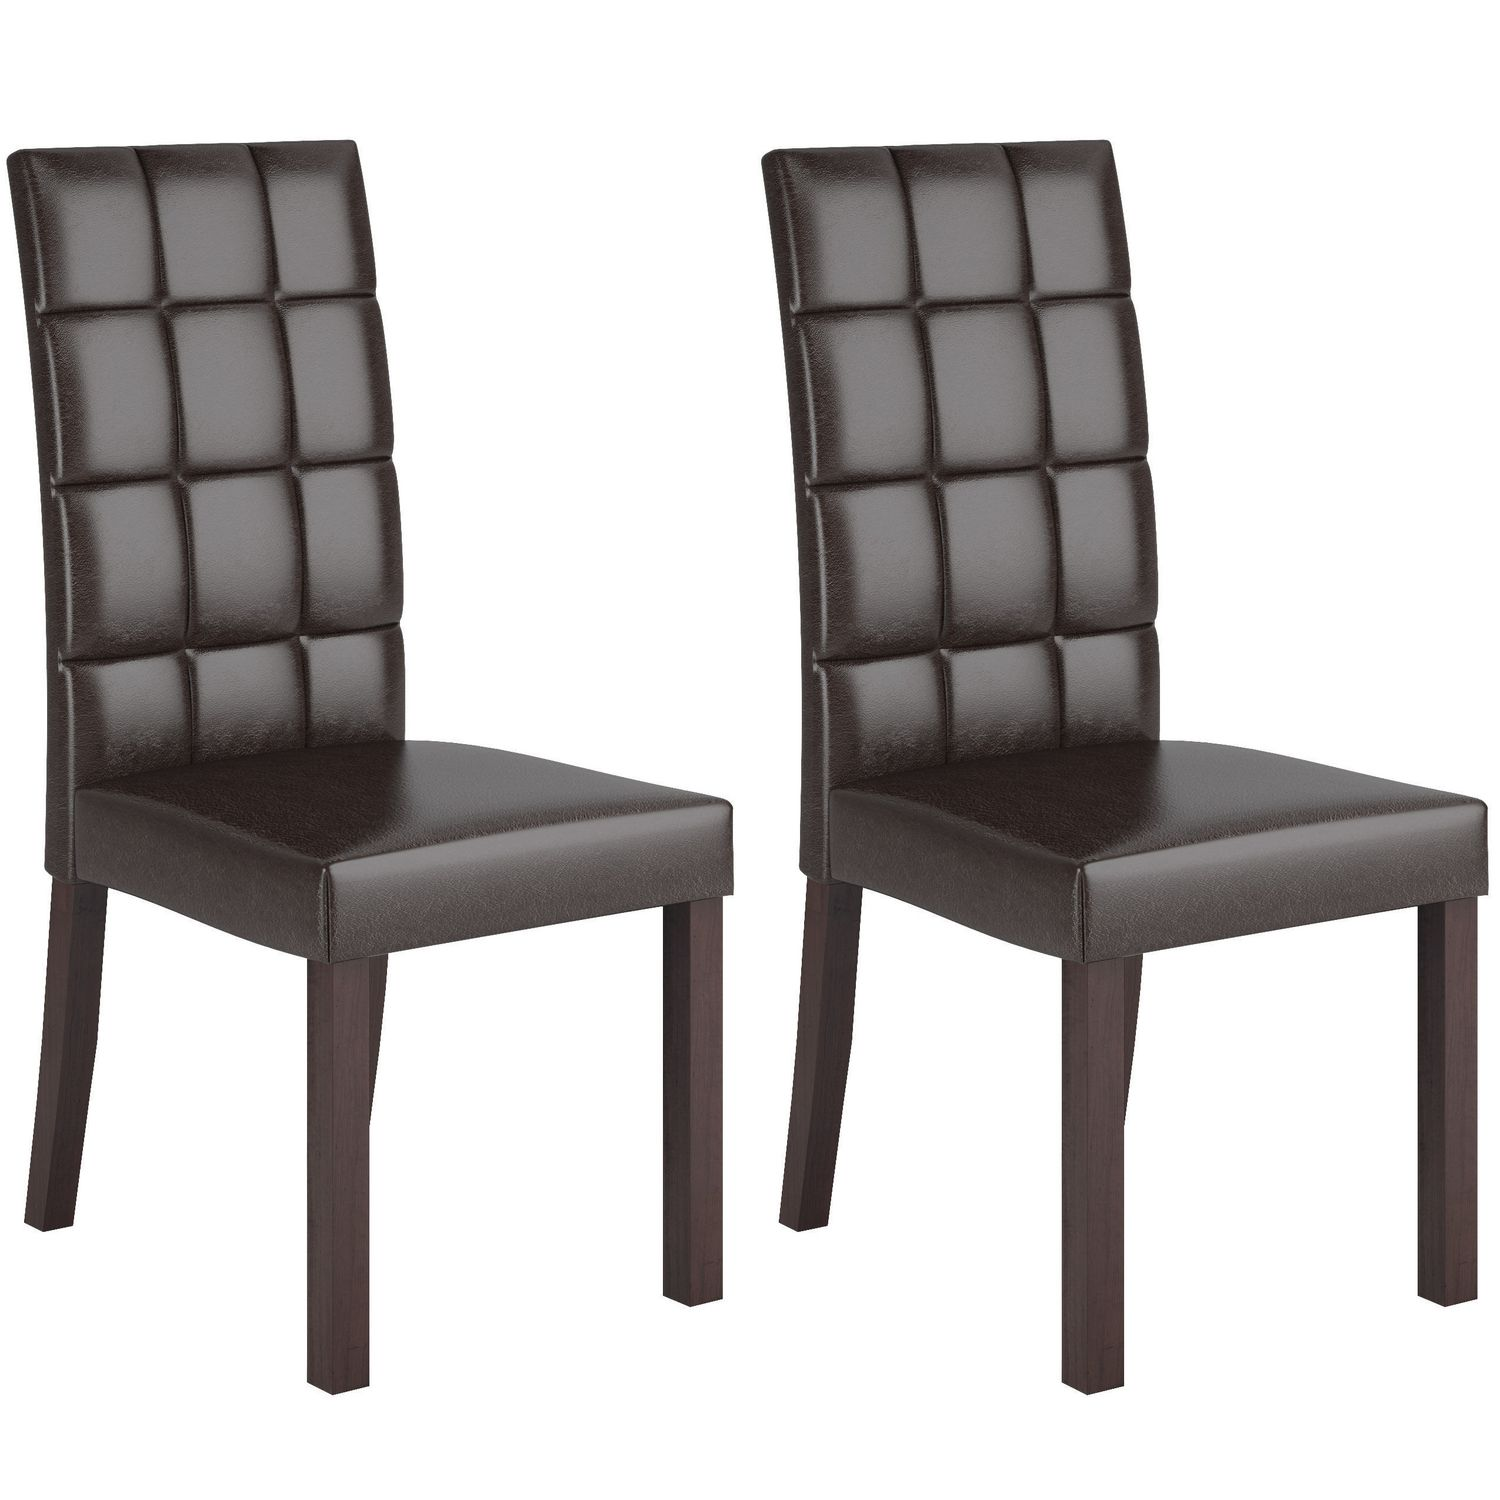 CorLiving Atwood Dark Brown Leatherette Dining Chairs Walmartca